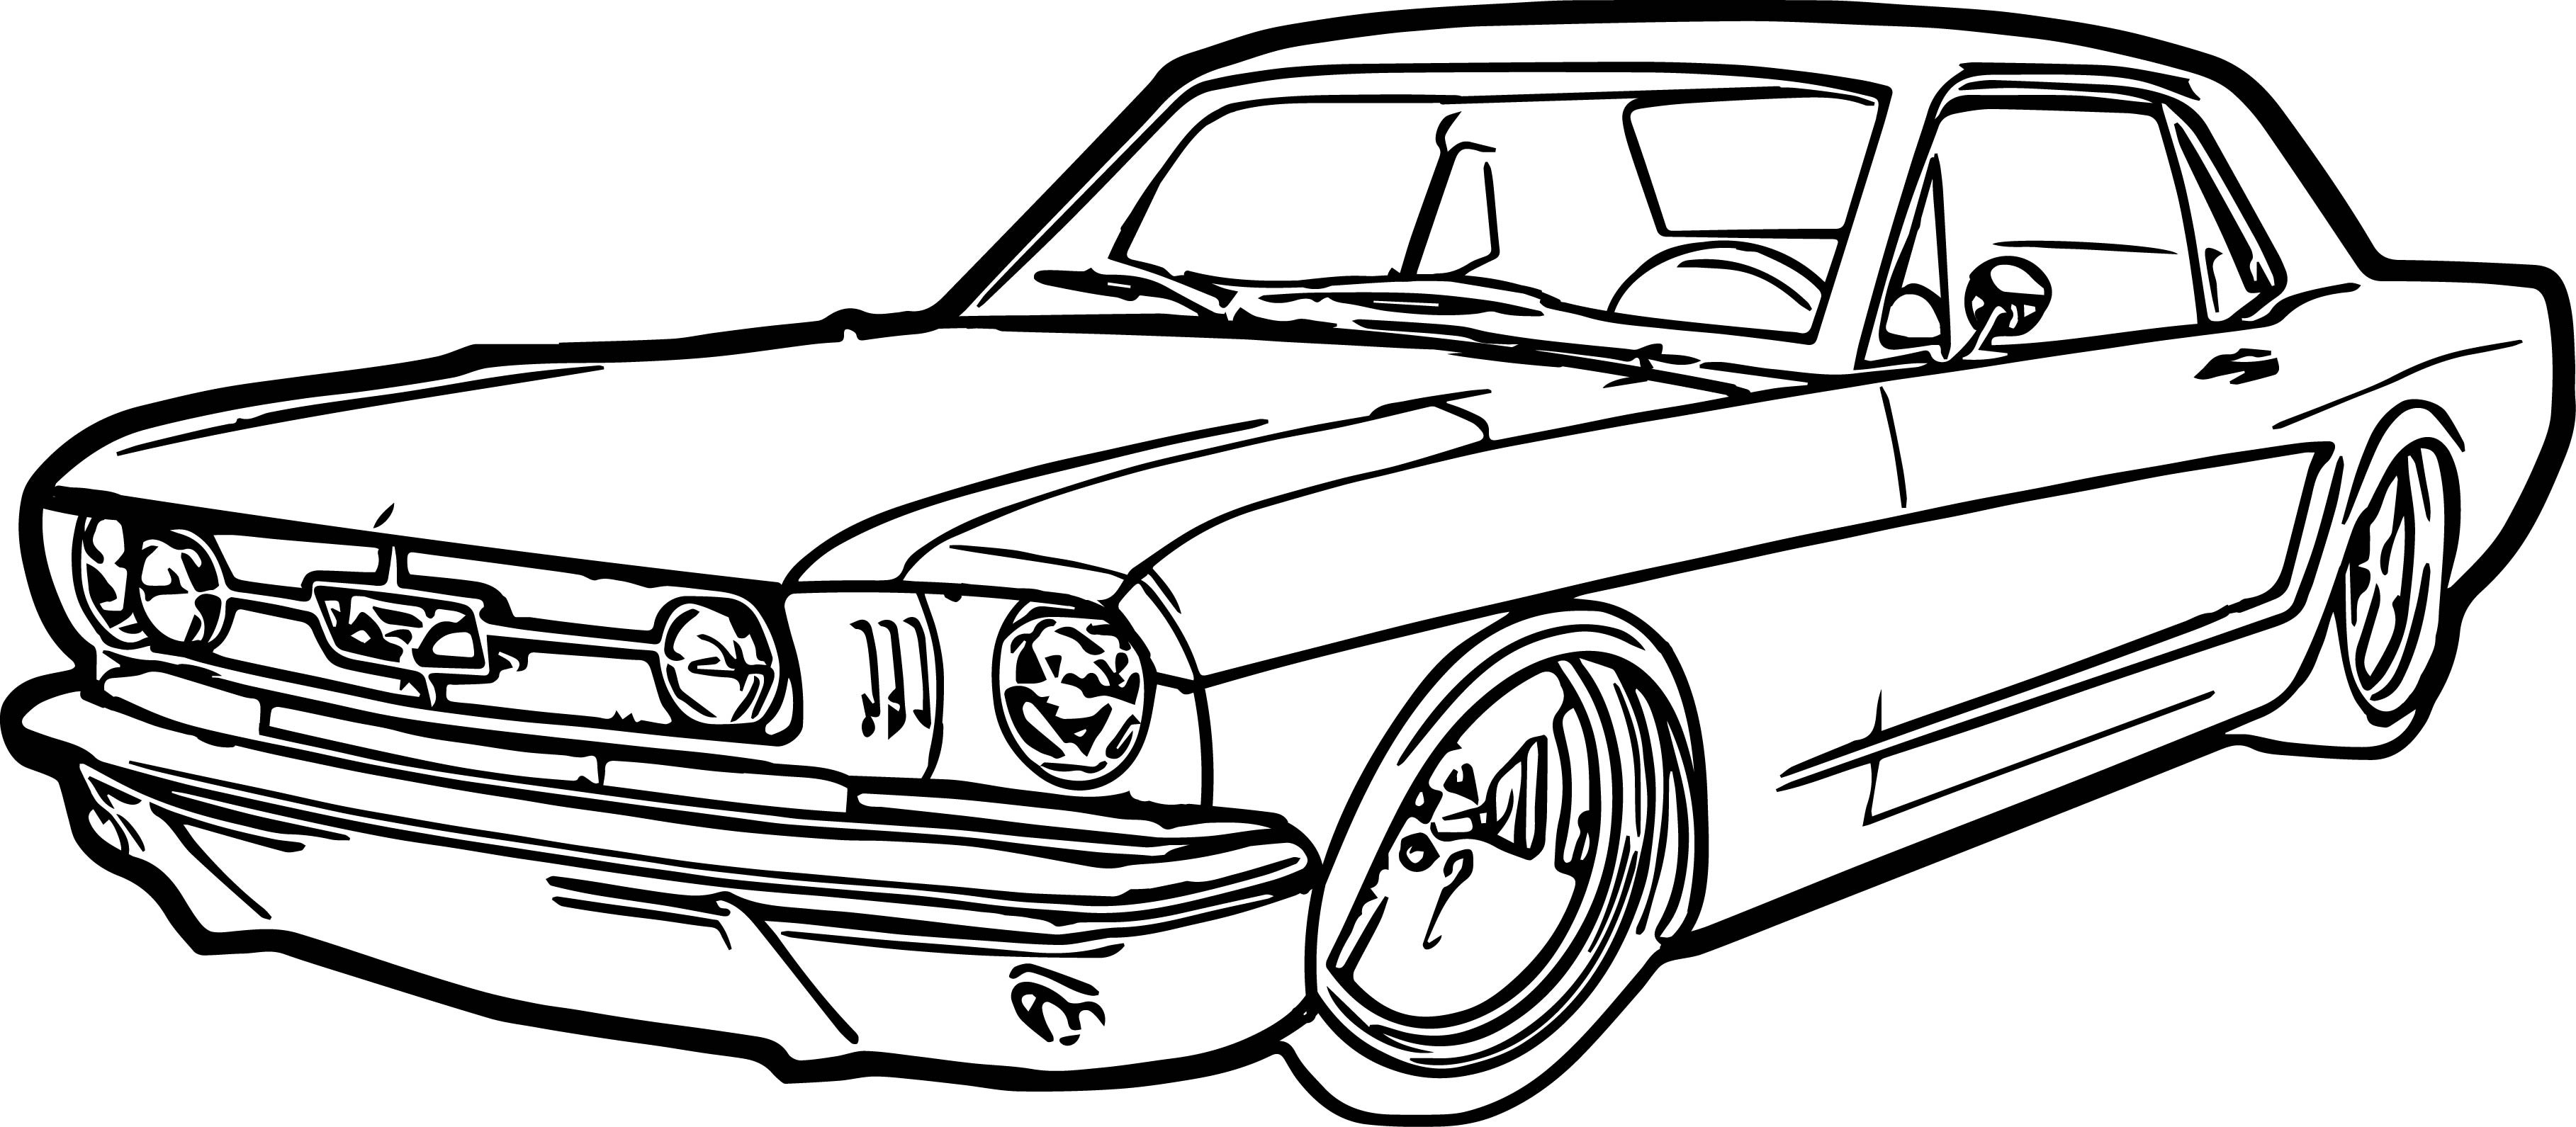 racecar coloring page coloring pages racecars coloring pages racecar coloring page